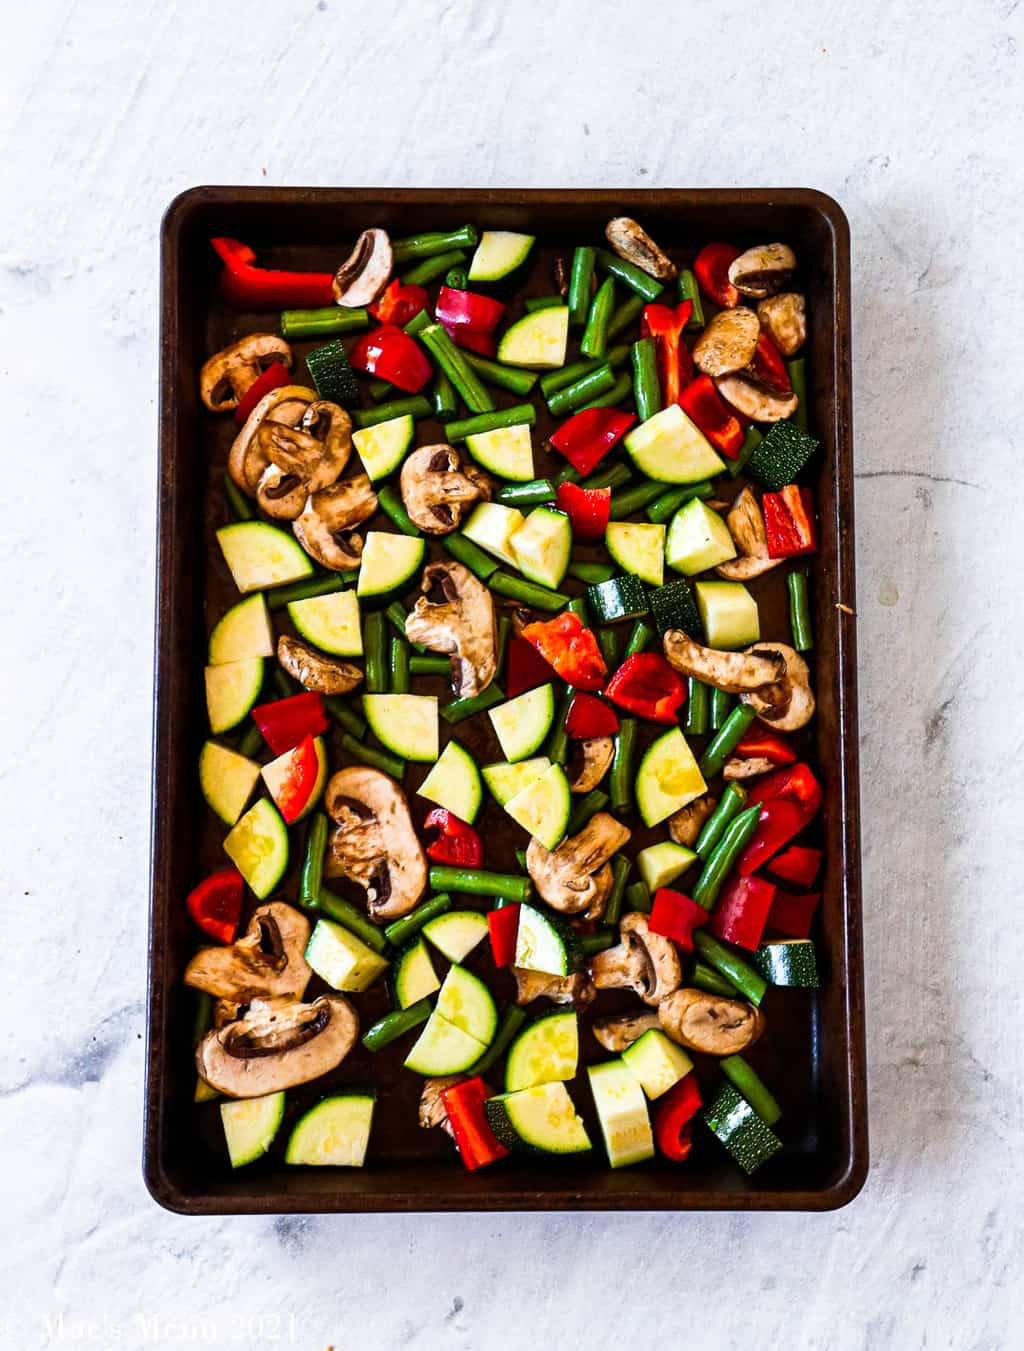 A roasting pan of zucchini, red pepper, mushrooms, and green pepper